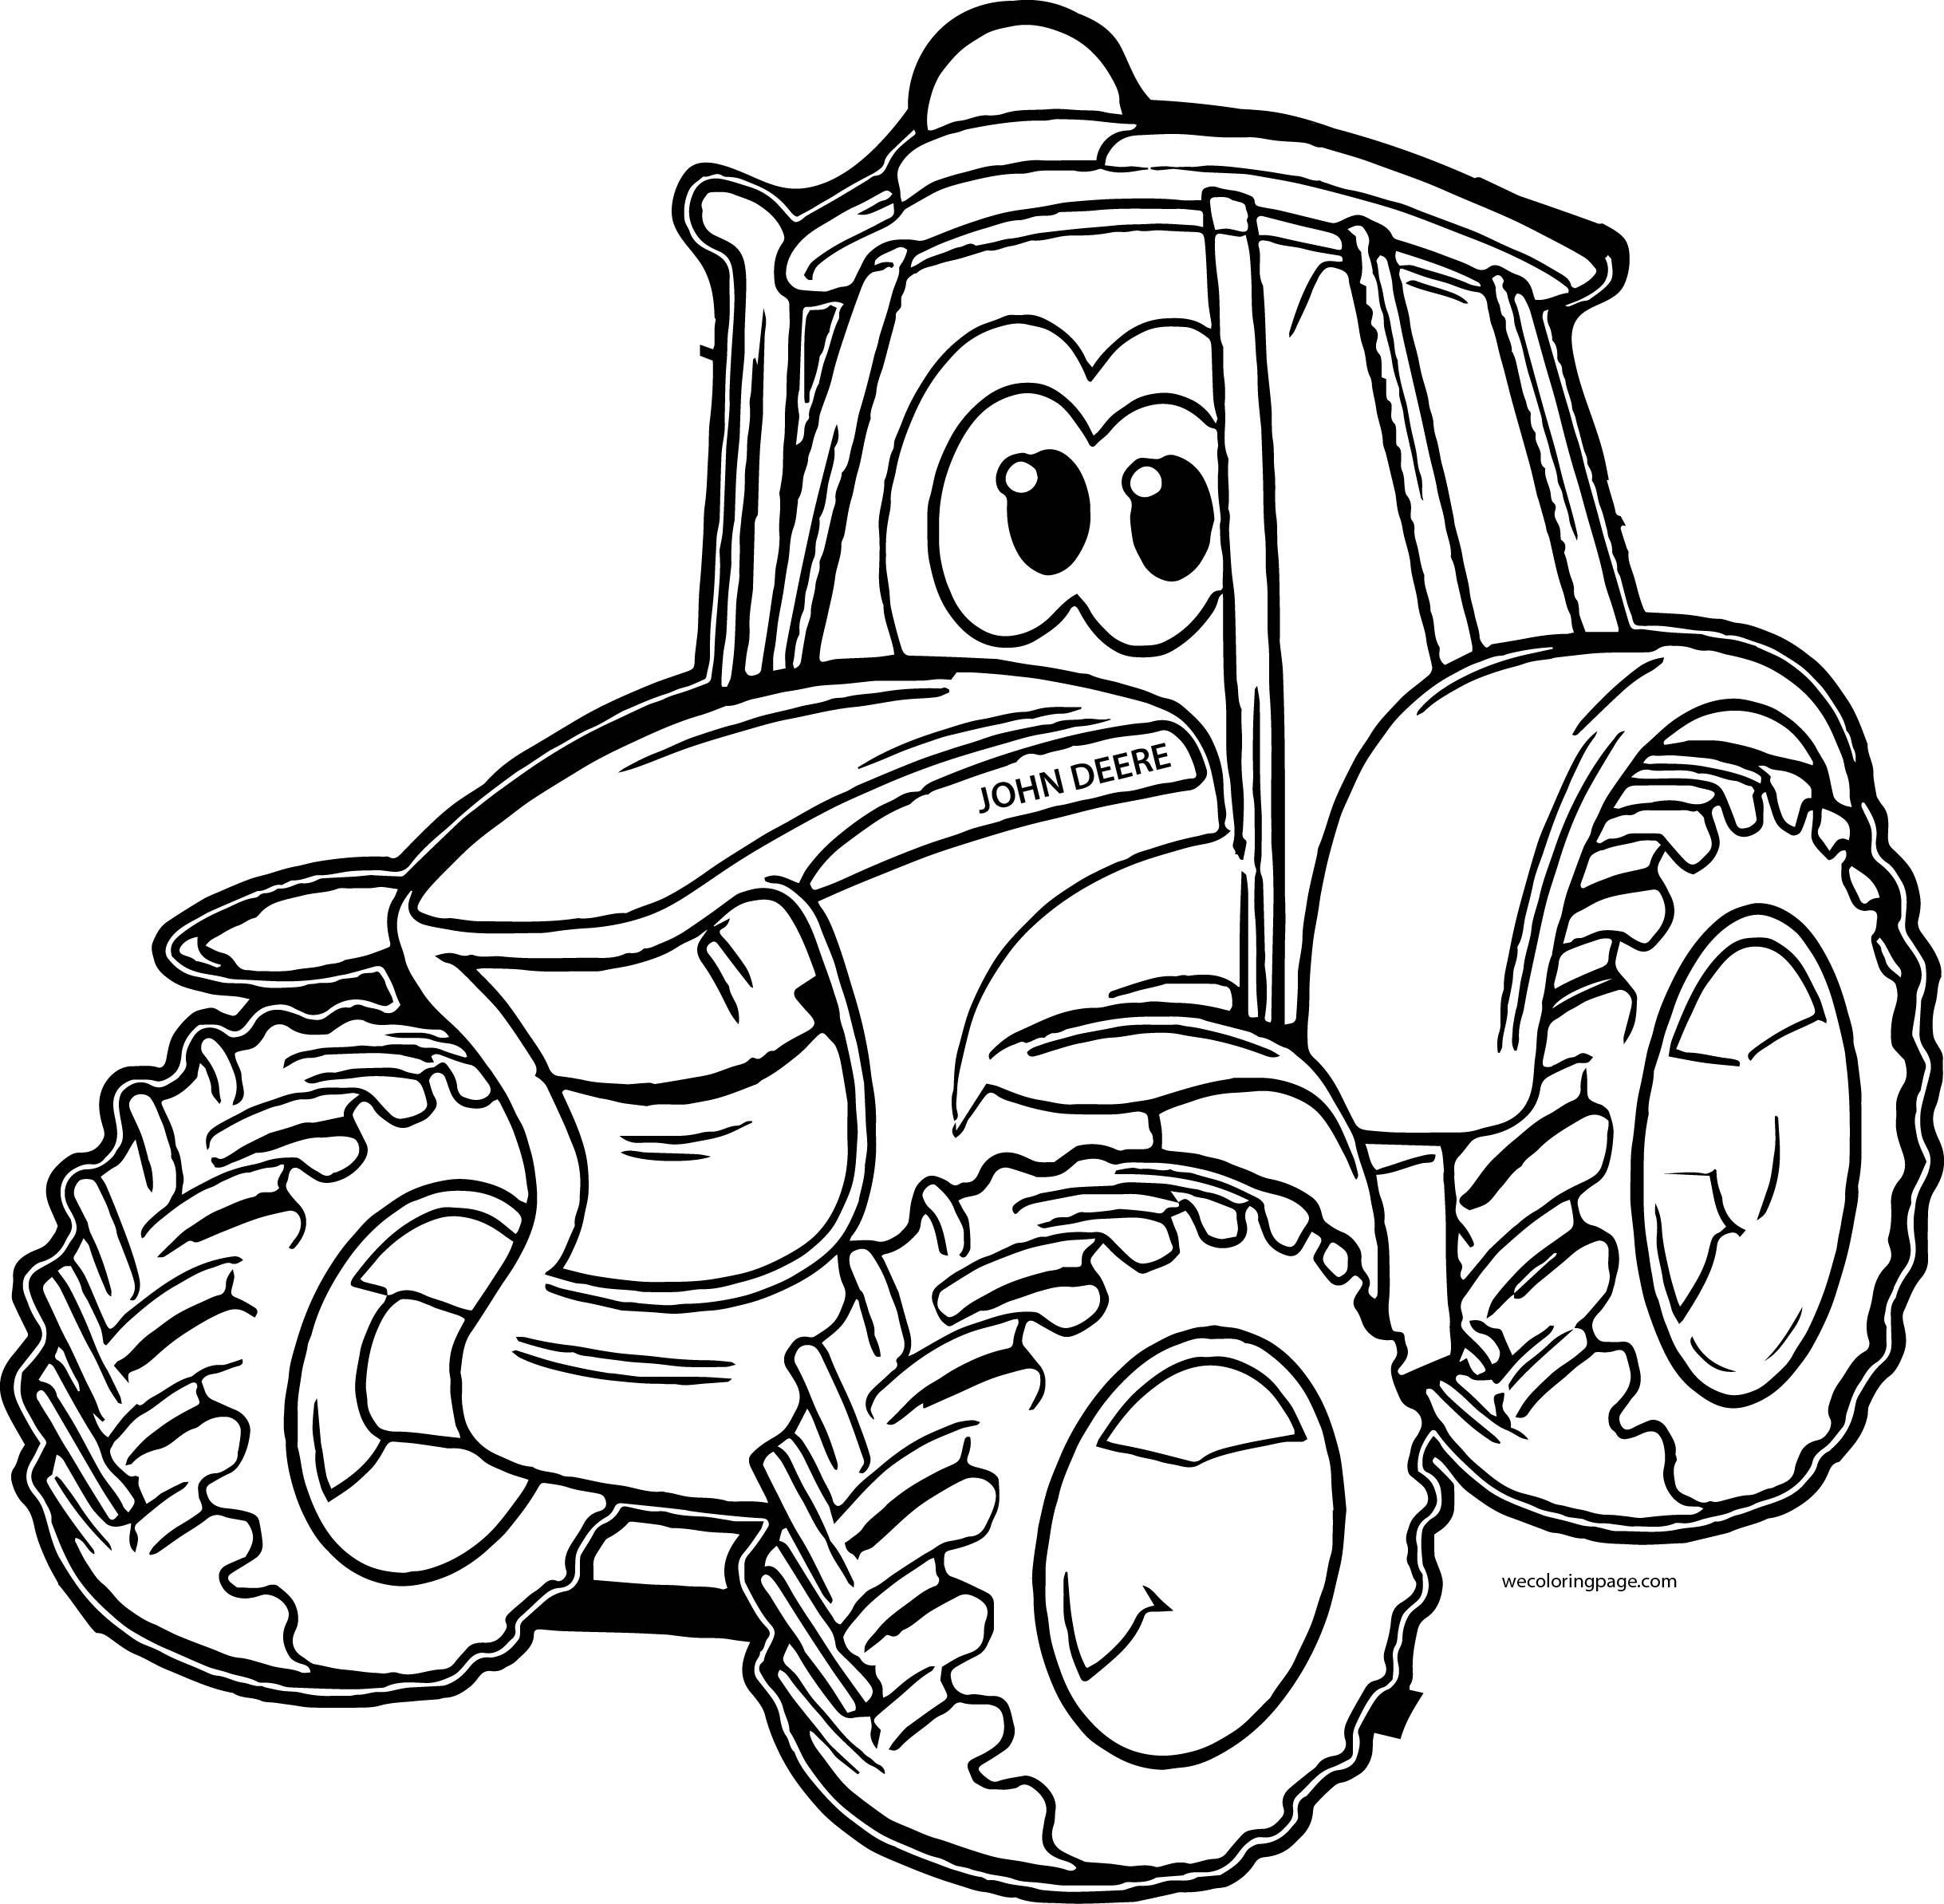 printable pictures of tractors top 25 free printable tractor coloring pages online printable pictures of tractors